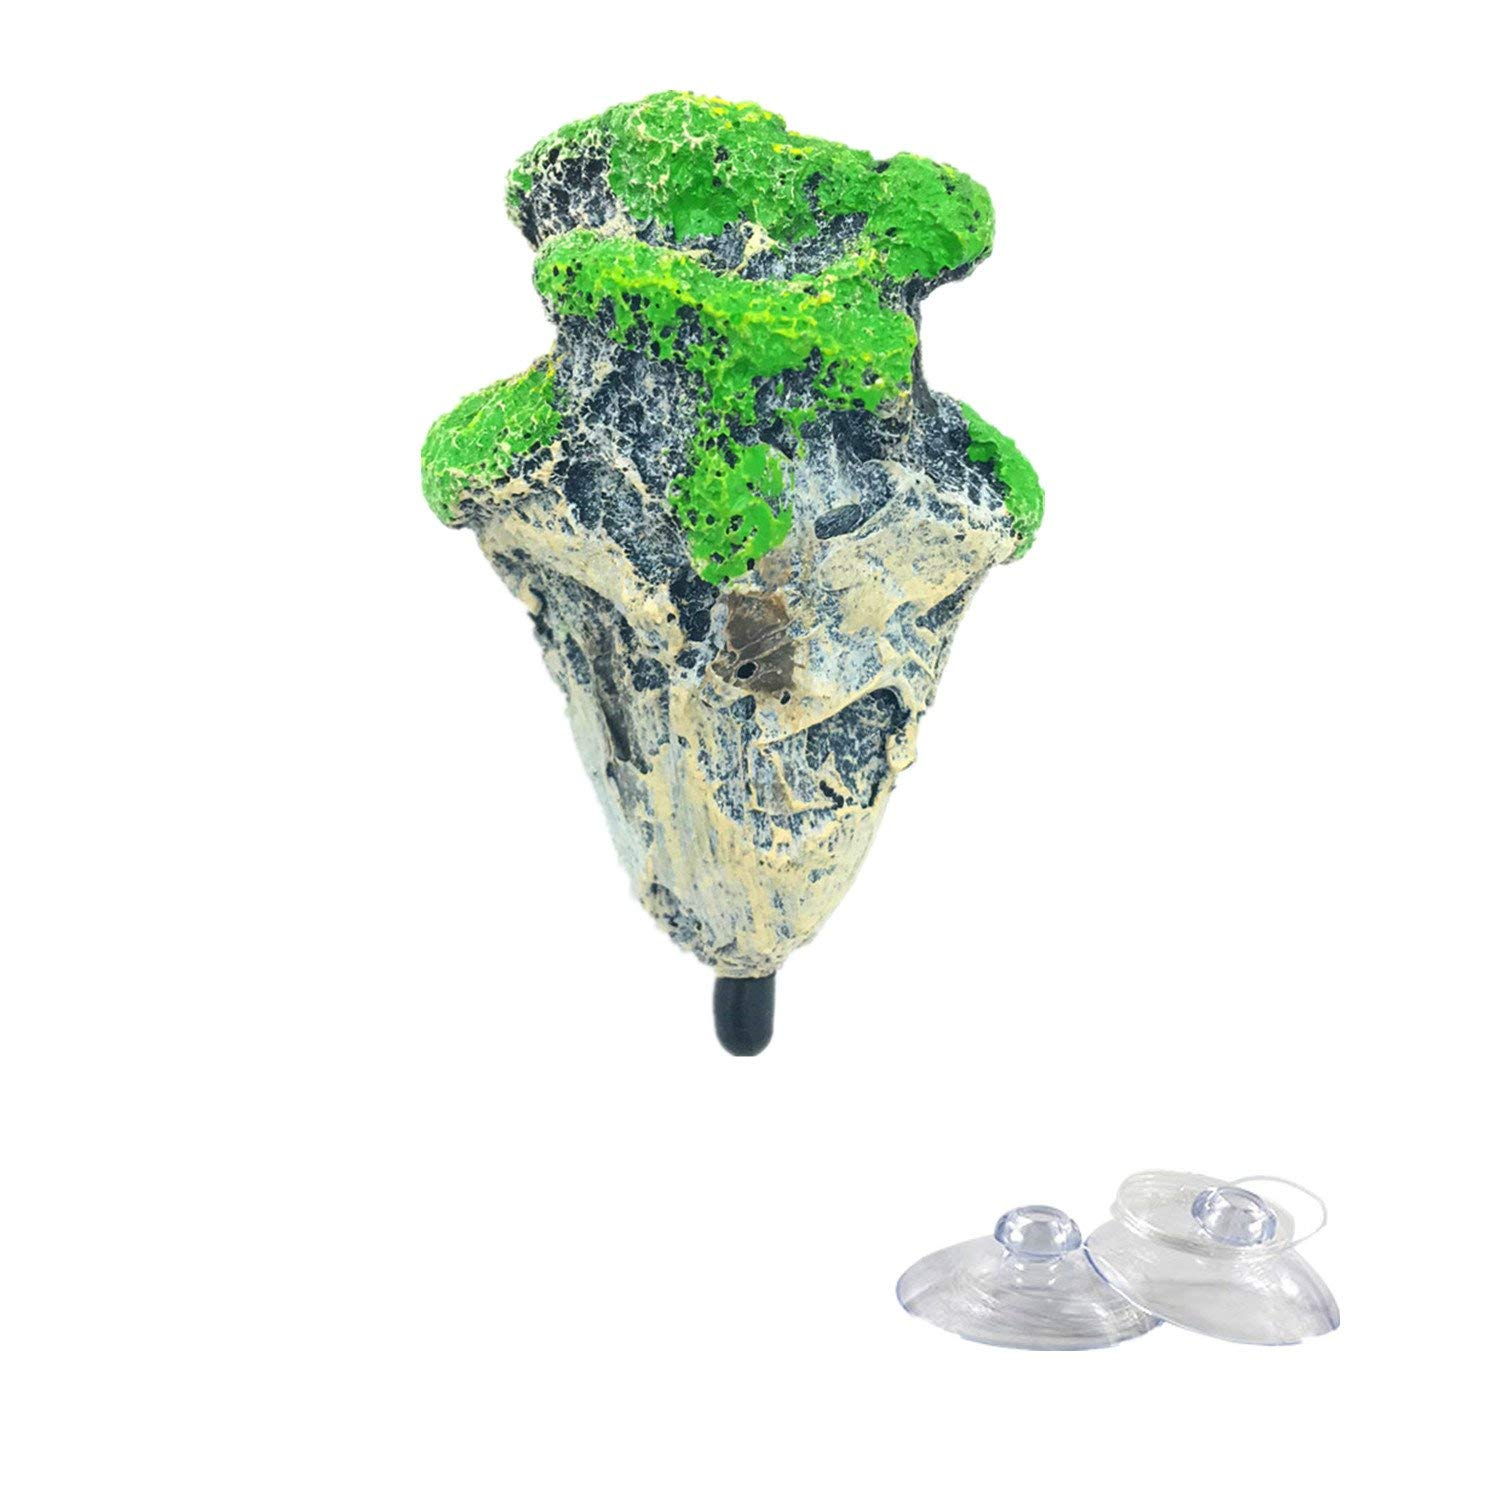 SWET Aquarium Floating Rock Stone, Fish Tank Rock Underwater Floating Decoration with [Stone Texture] [Simulation Moss] [Safe] [Create a Rock Suspension Landscape]